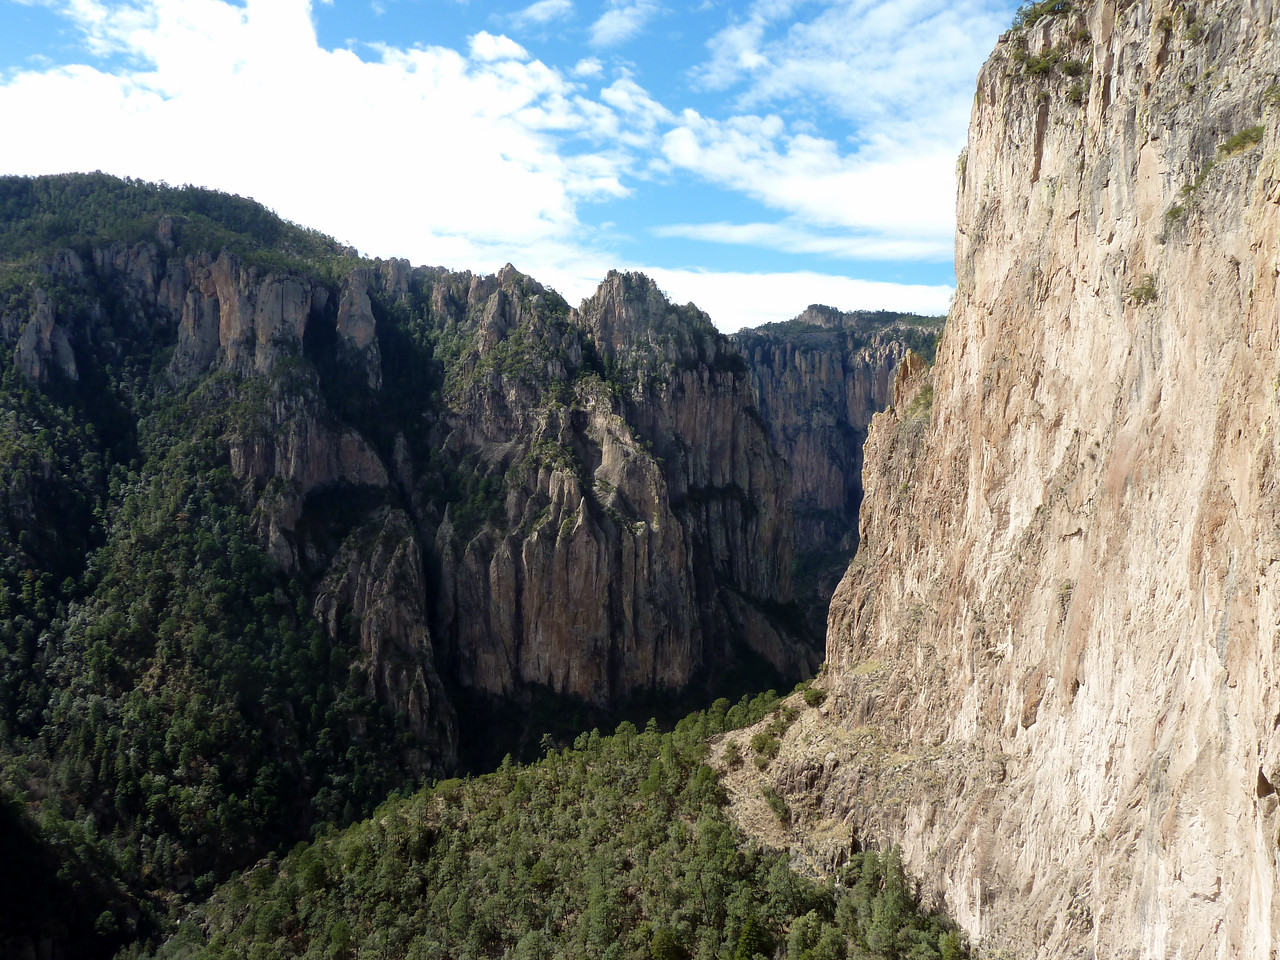 Looking down the canyon.